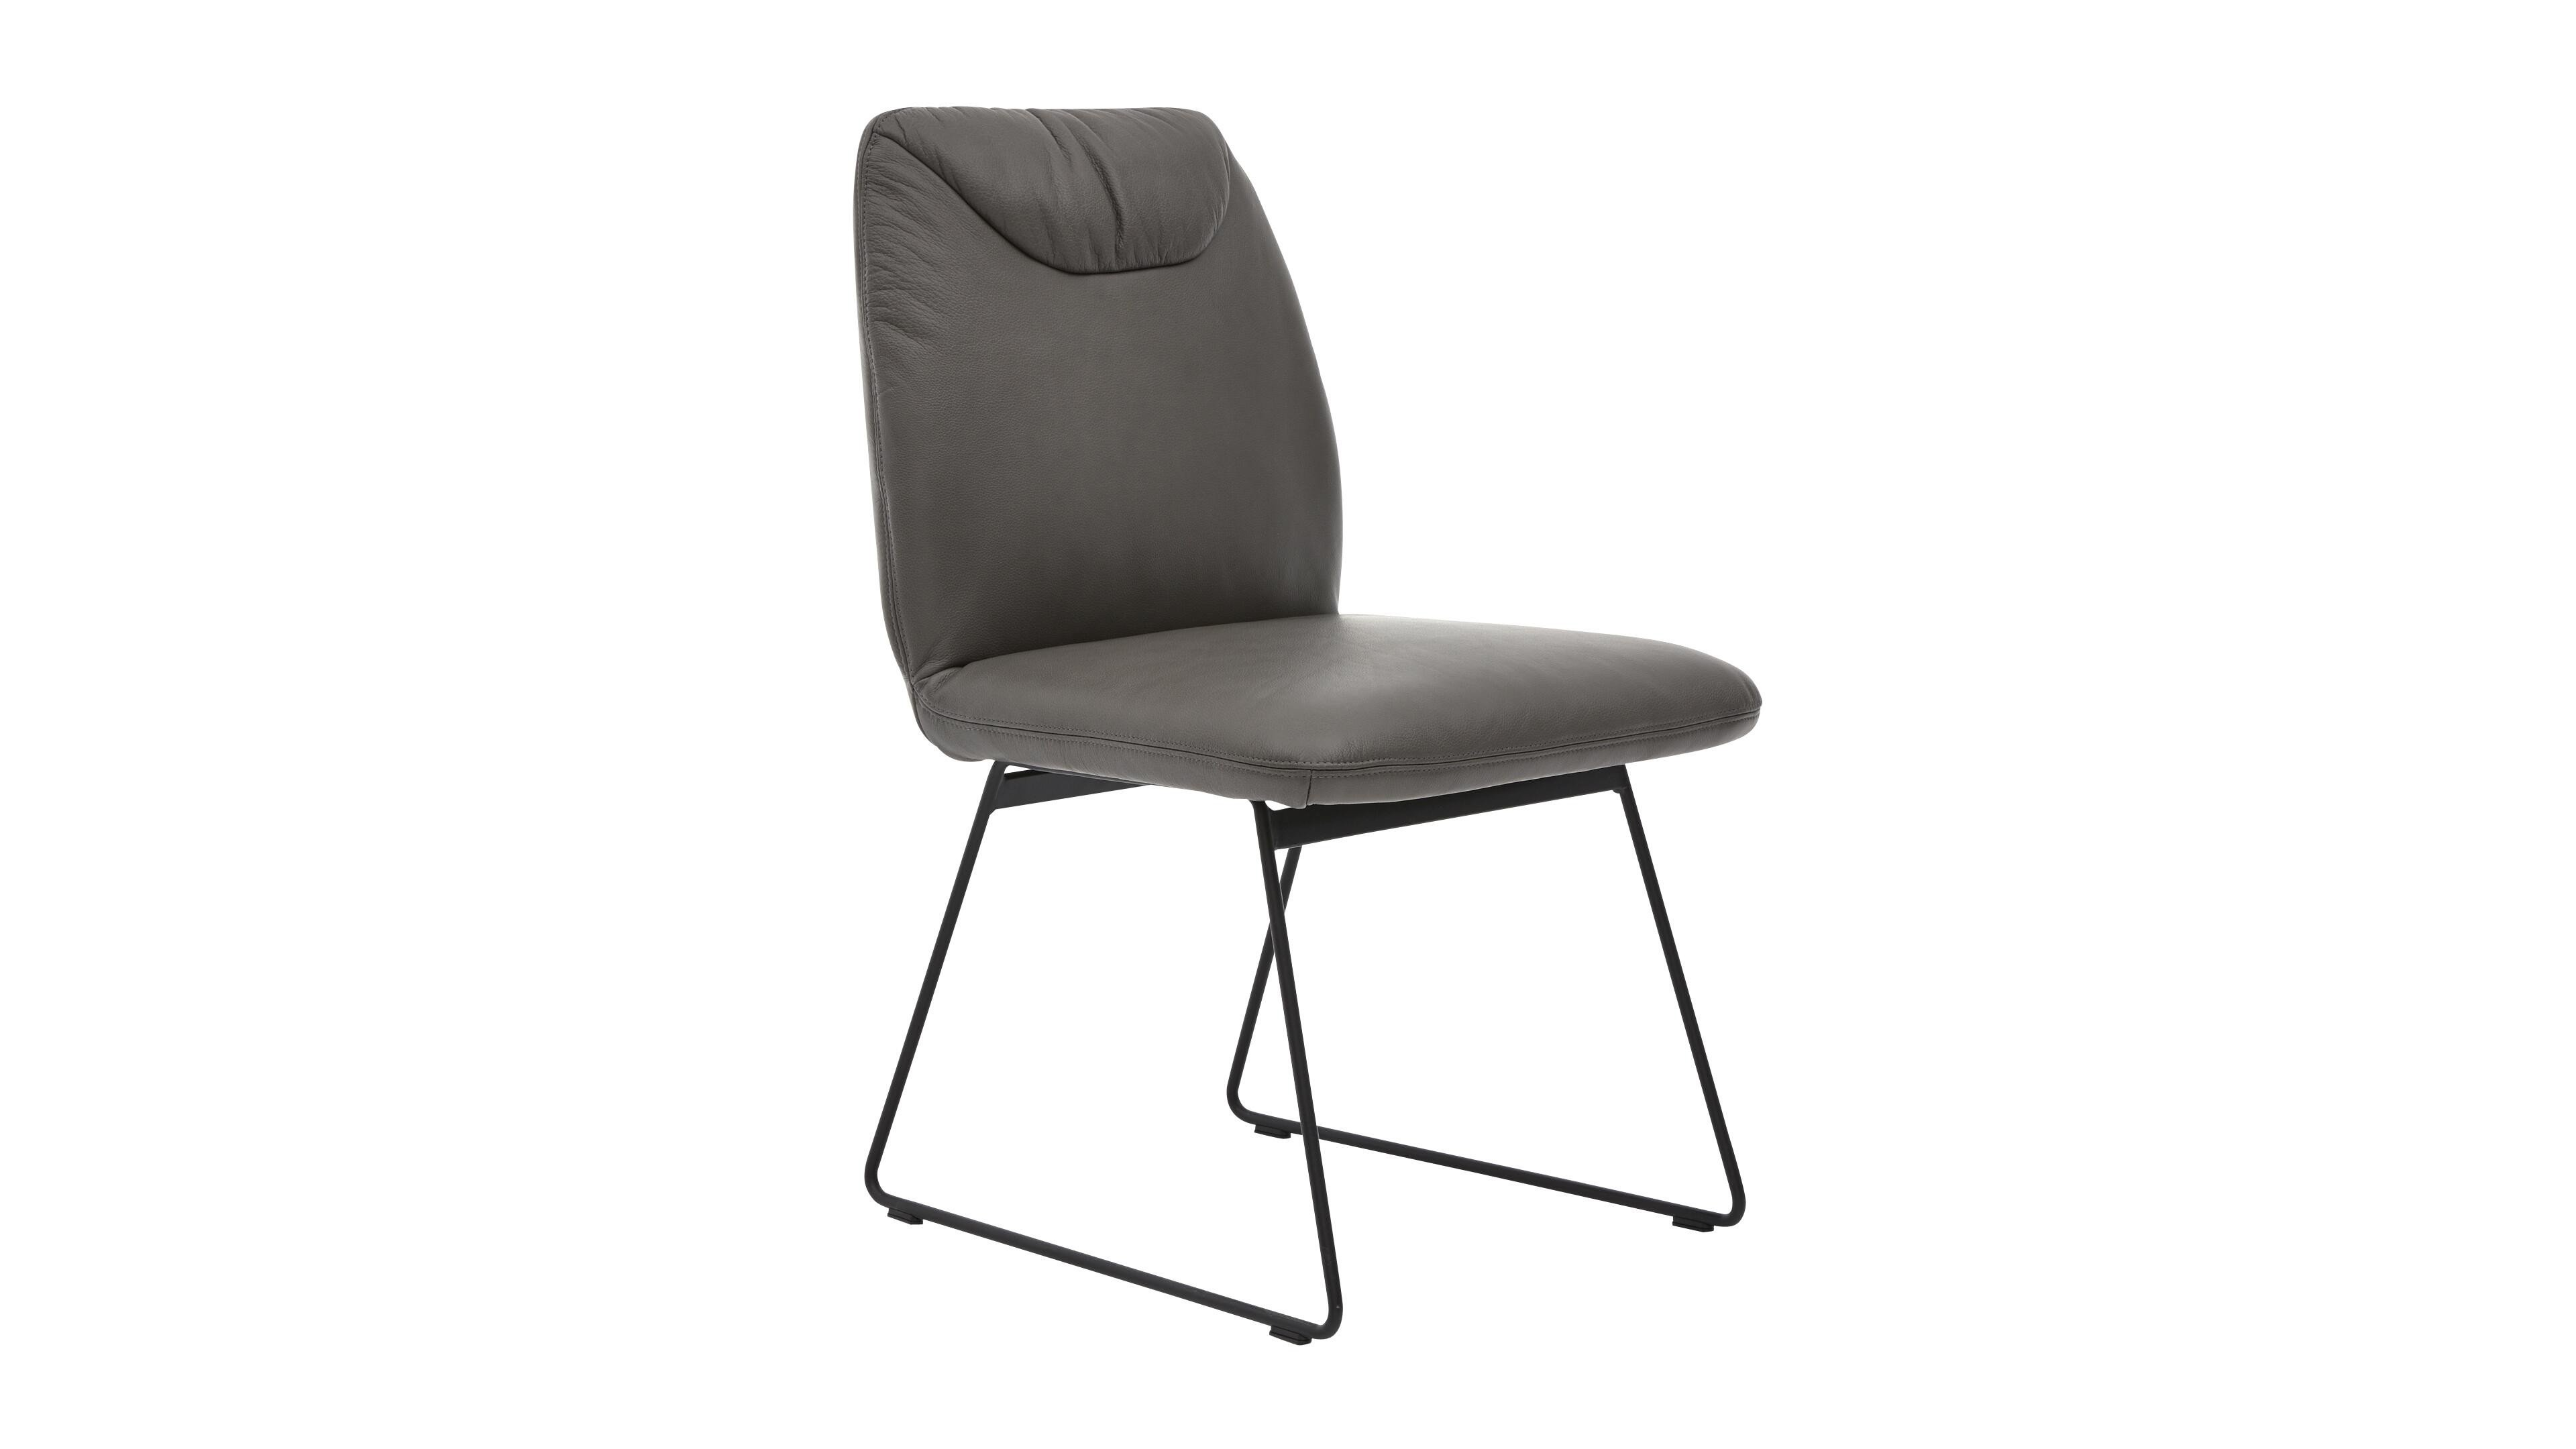 Stuhl Interliving 5501 Leder,MetallEisen/Metall